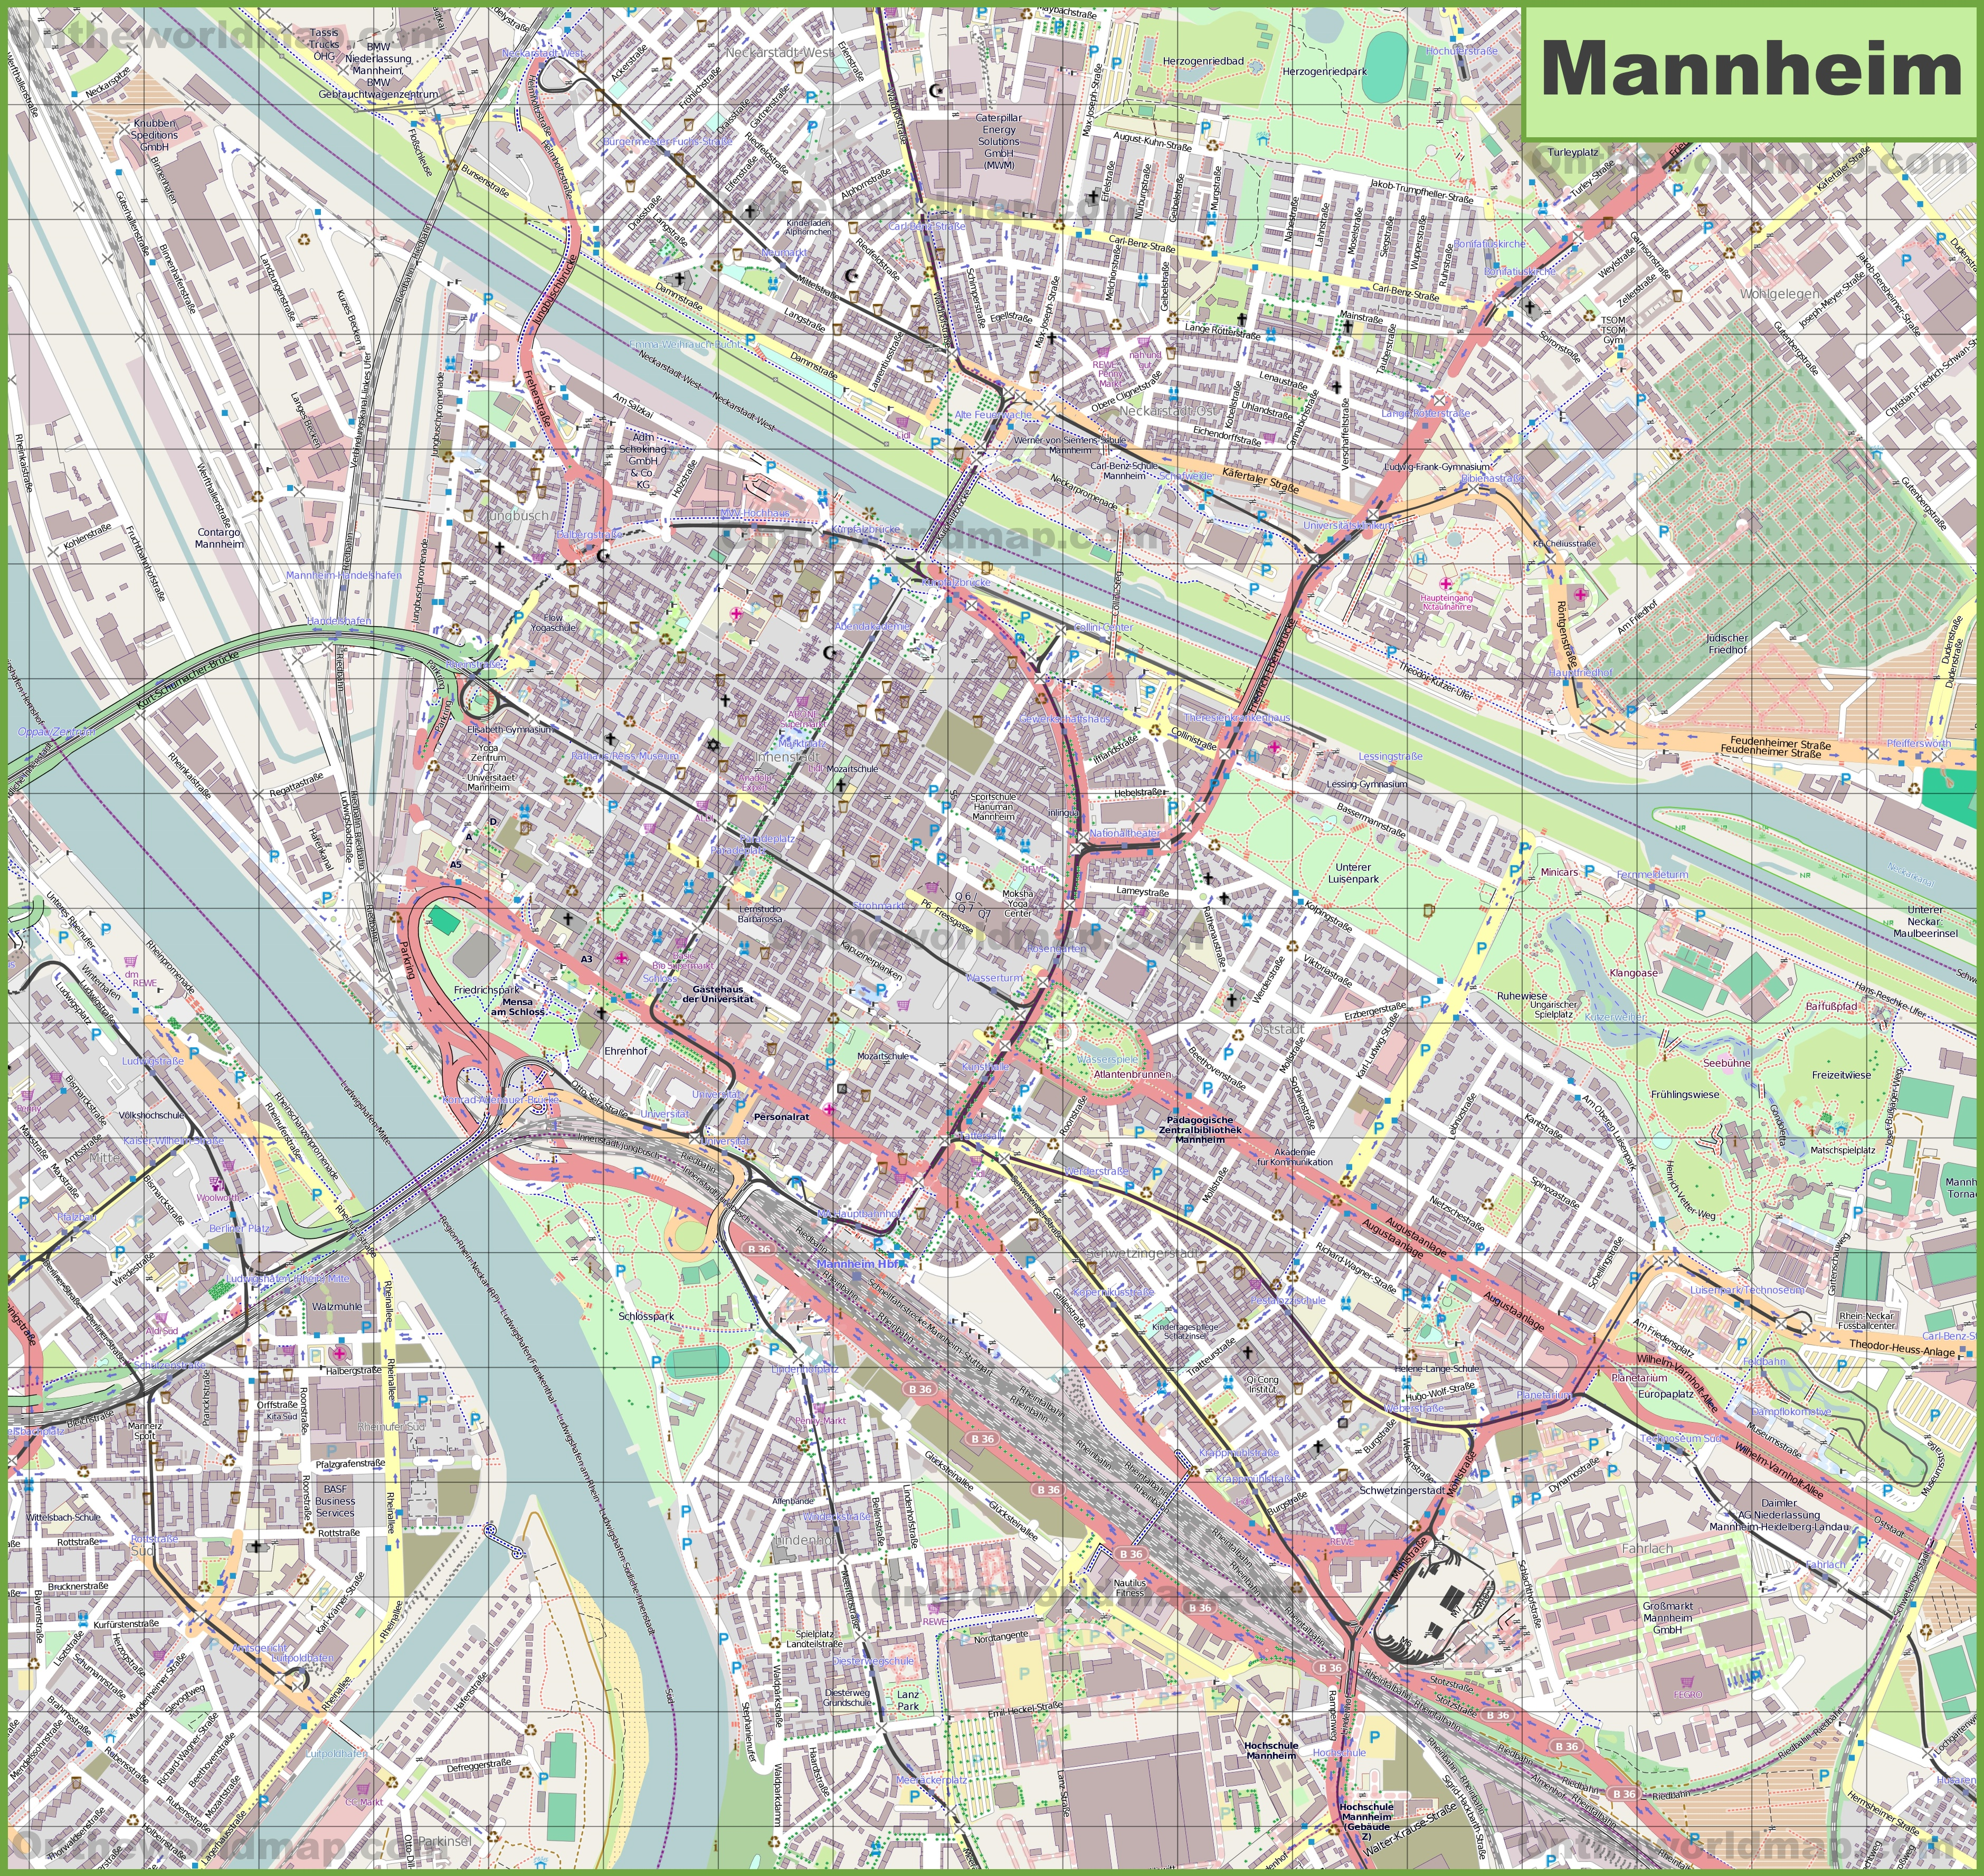 Map Of Germany Mannheim.Large Detailed Map Of Mannheim